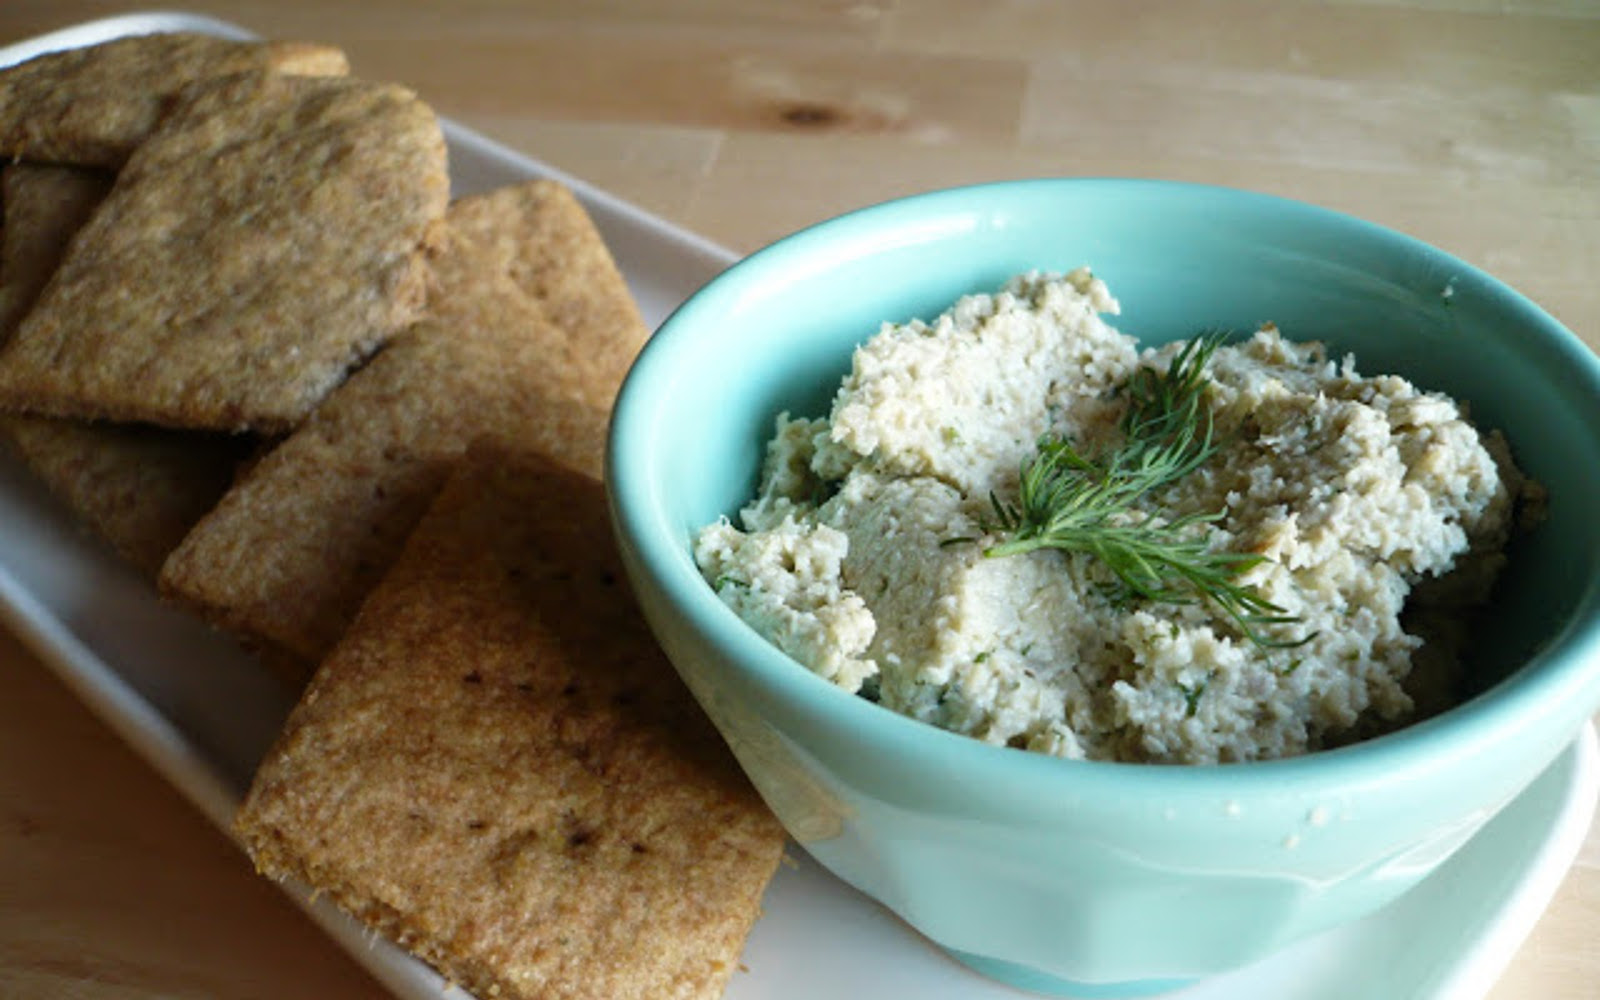 Spelt and Flax Crackers With a Lemon Dill Sunflower Pate